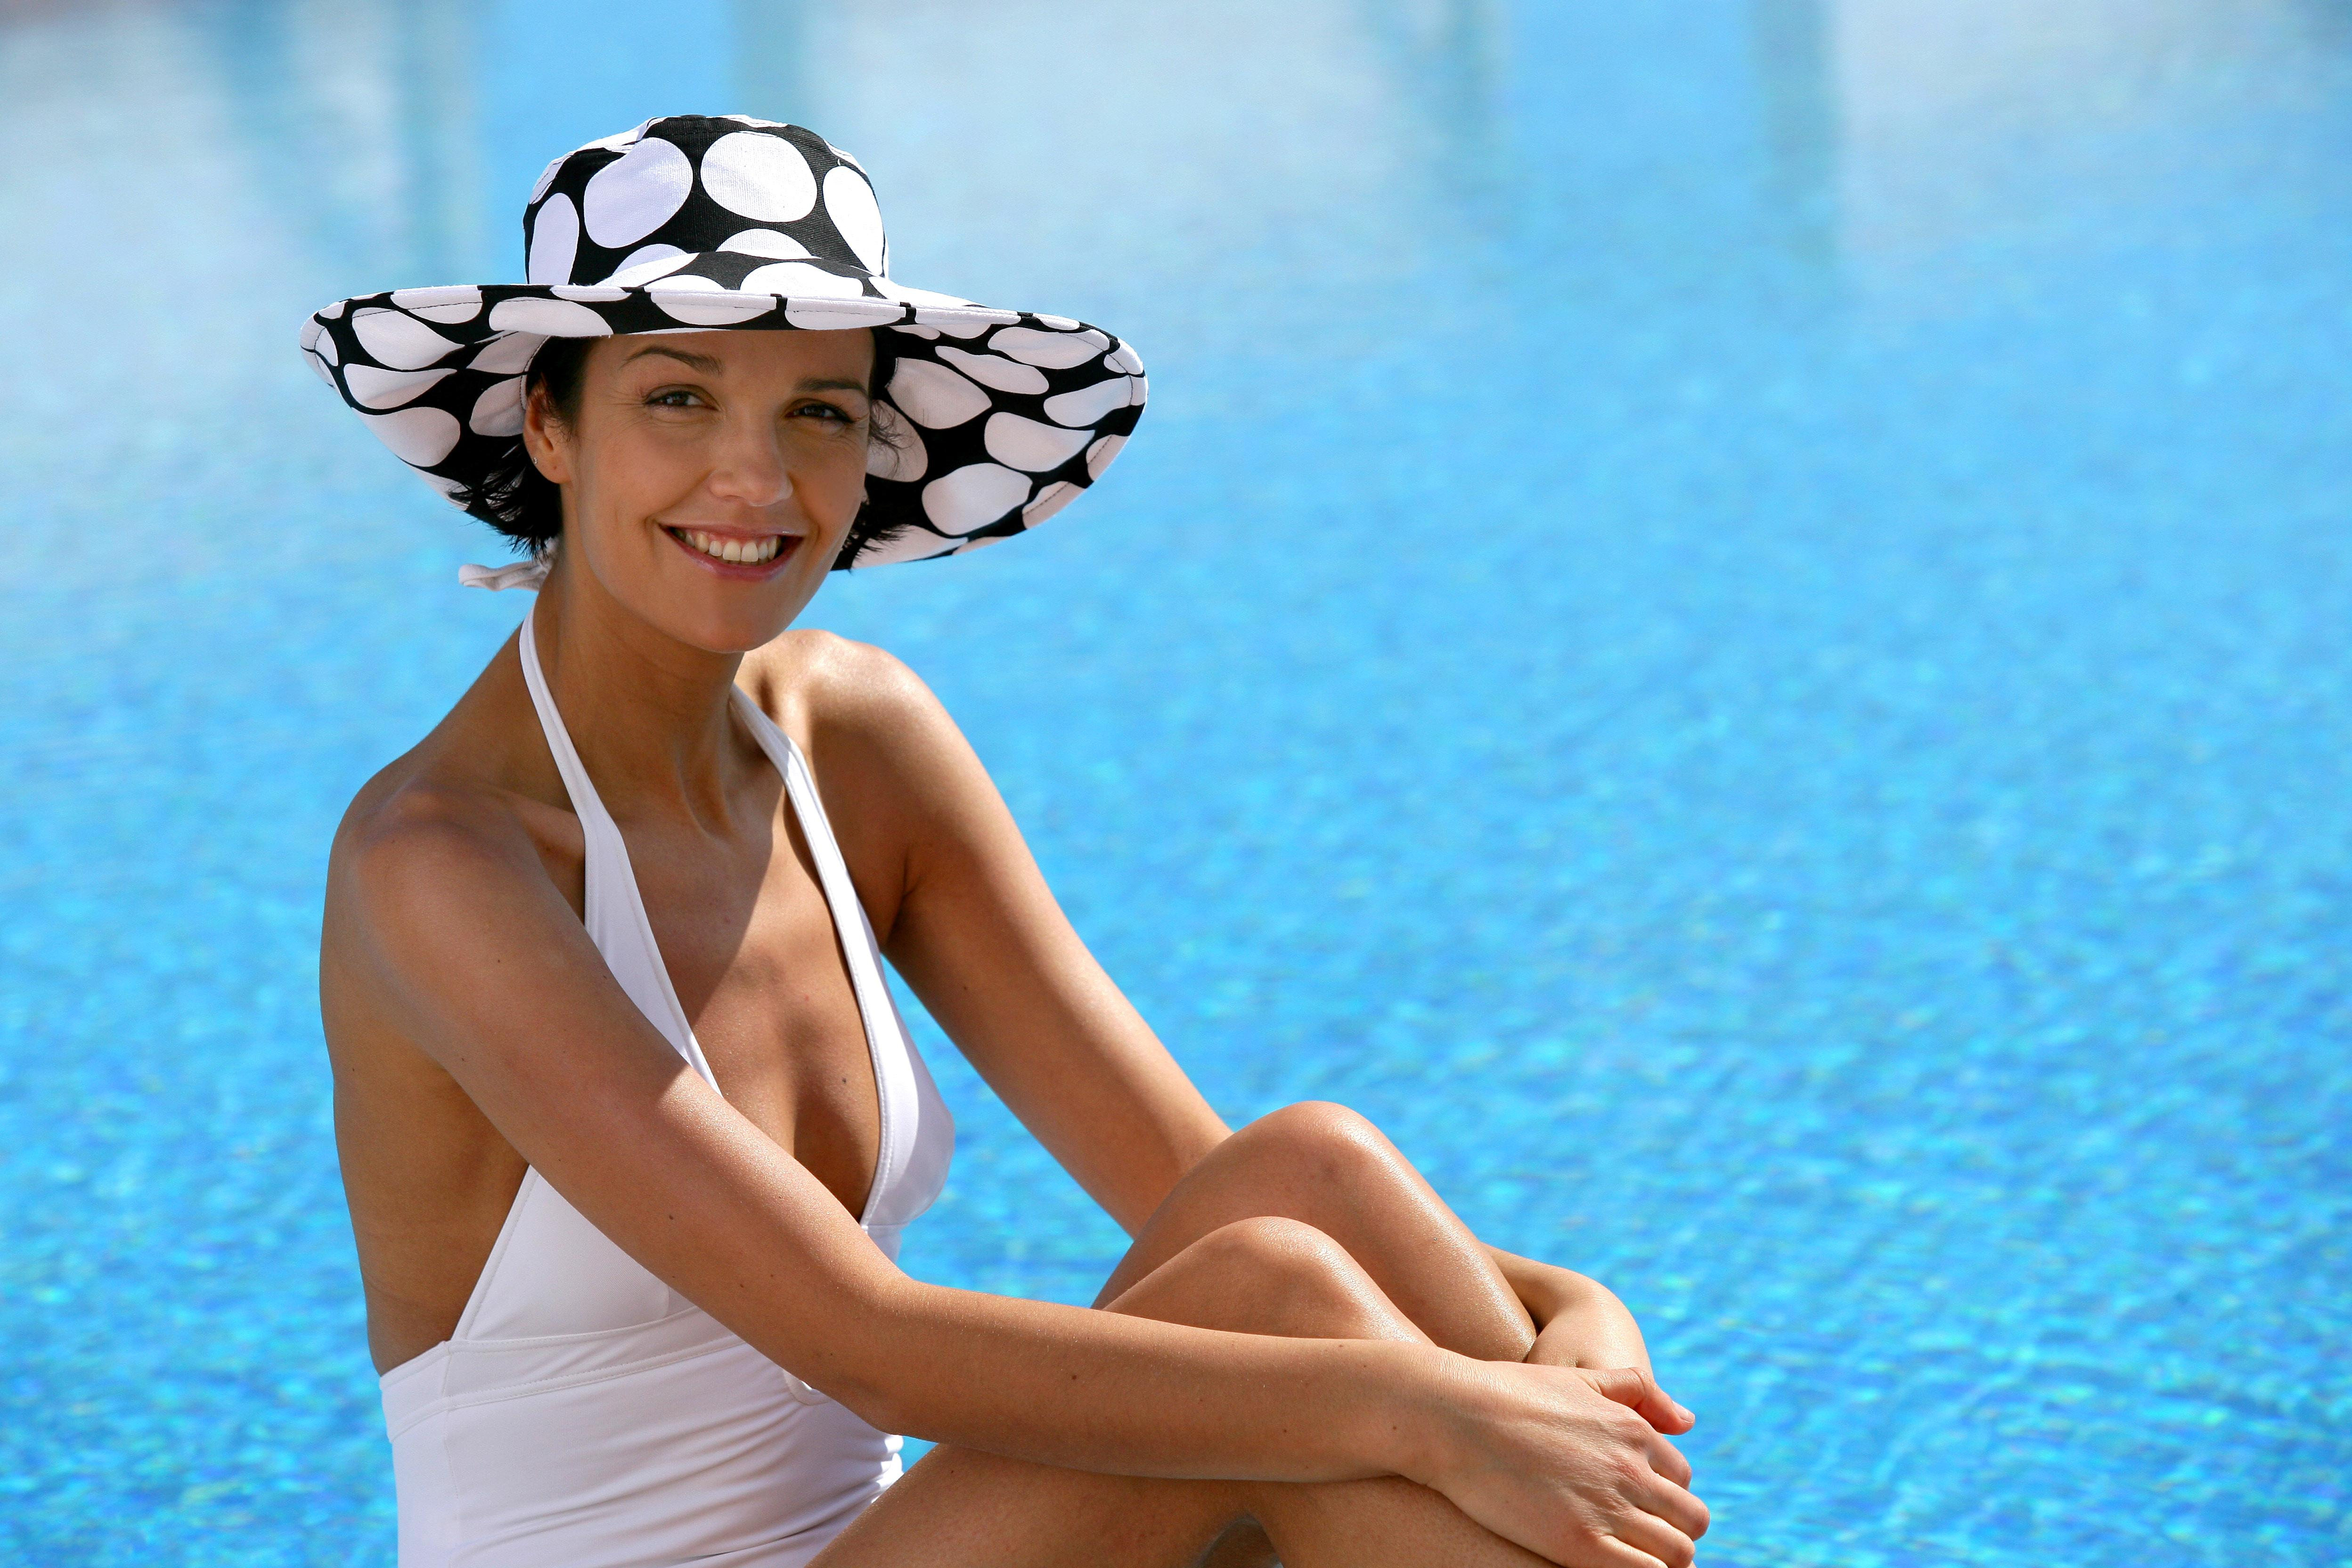 Skin Cancer Detection And Prevention Month